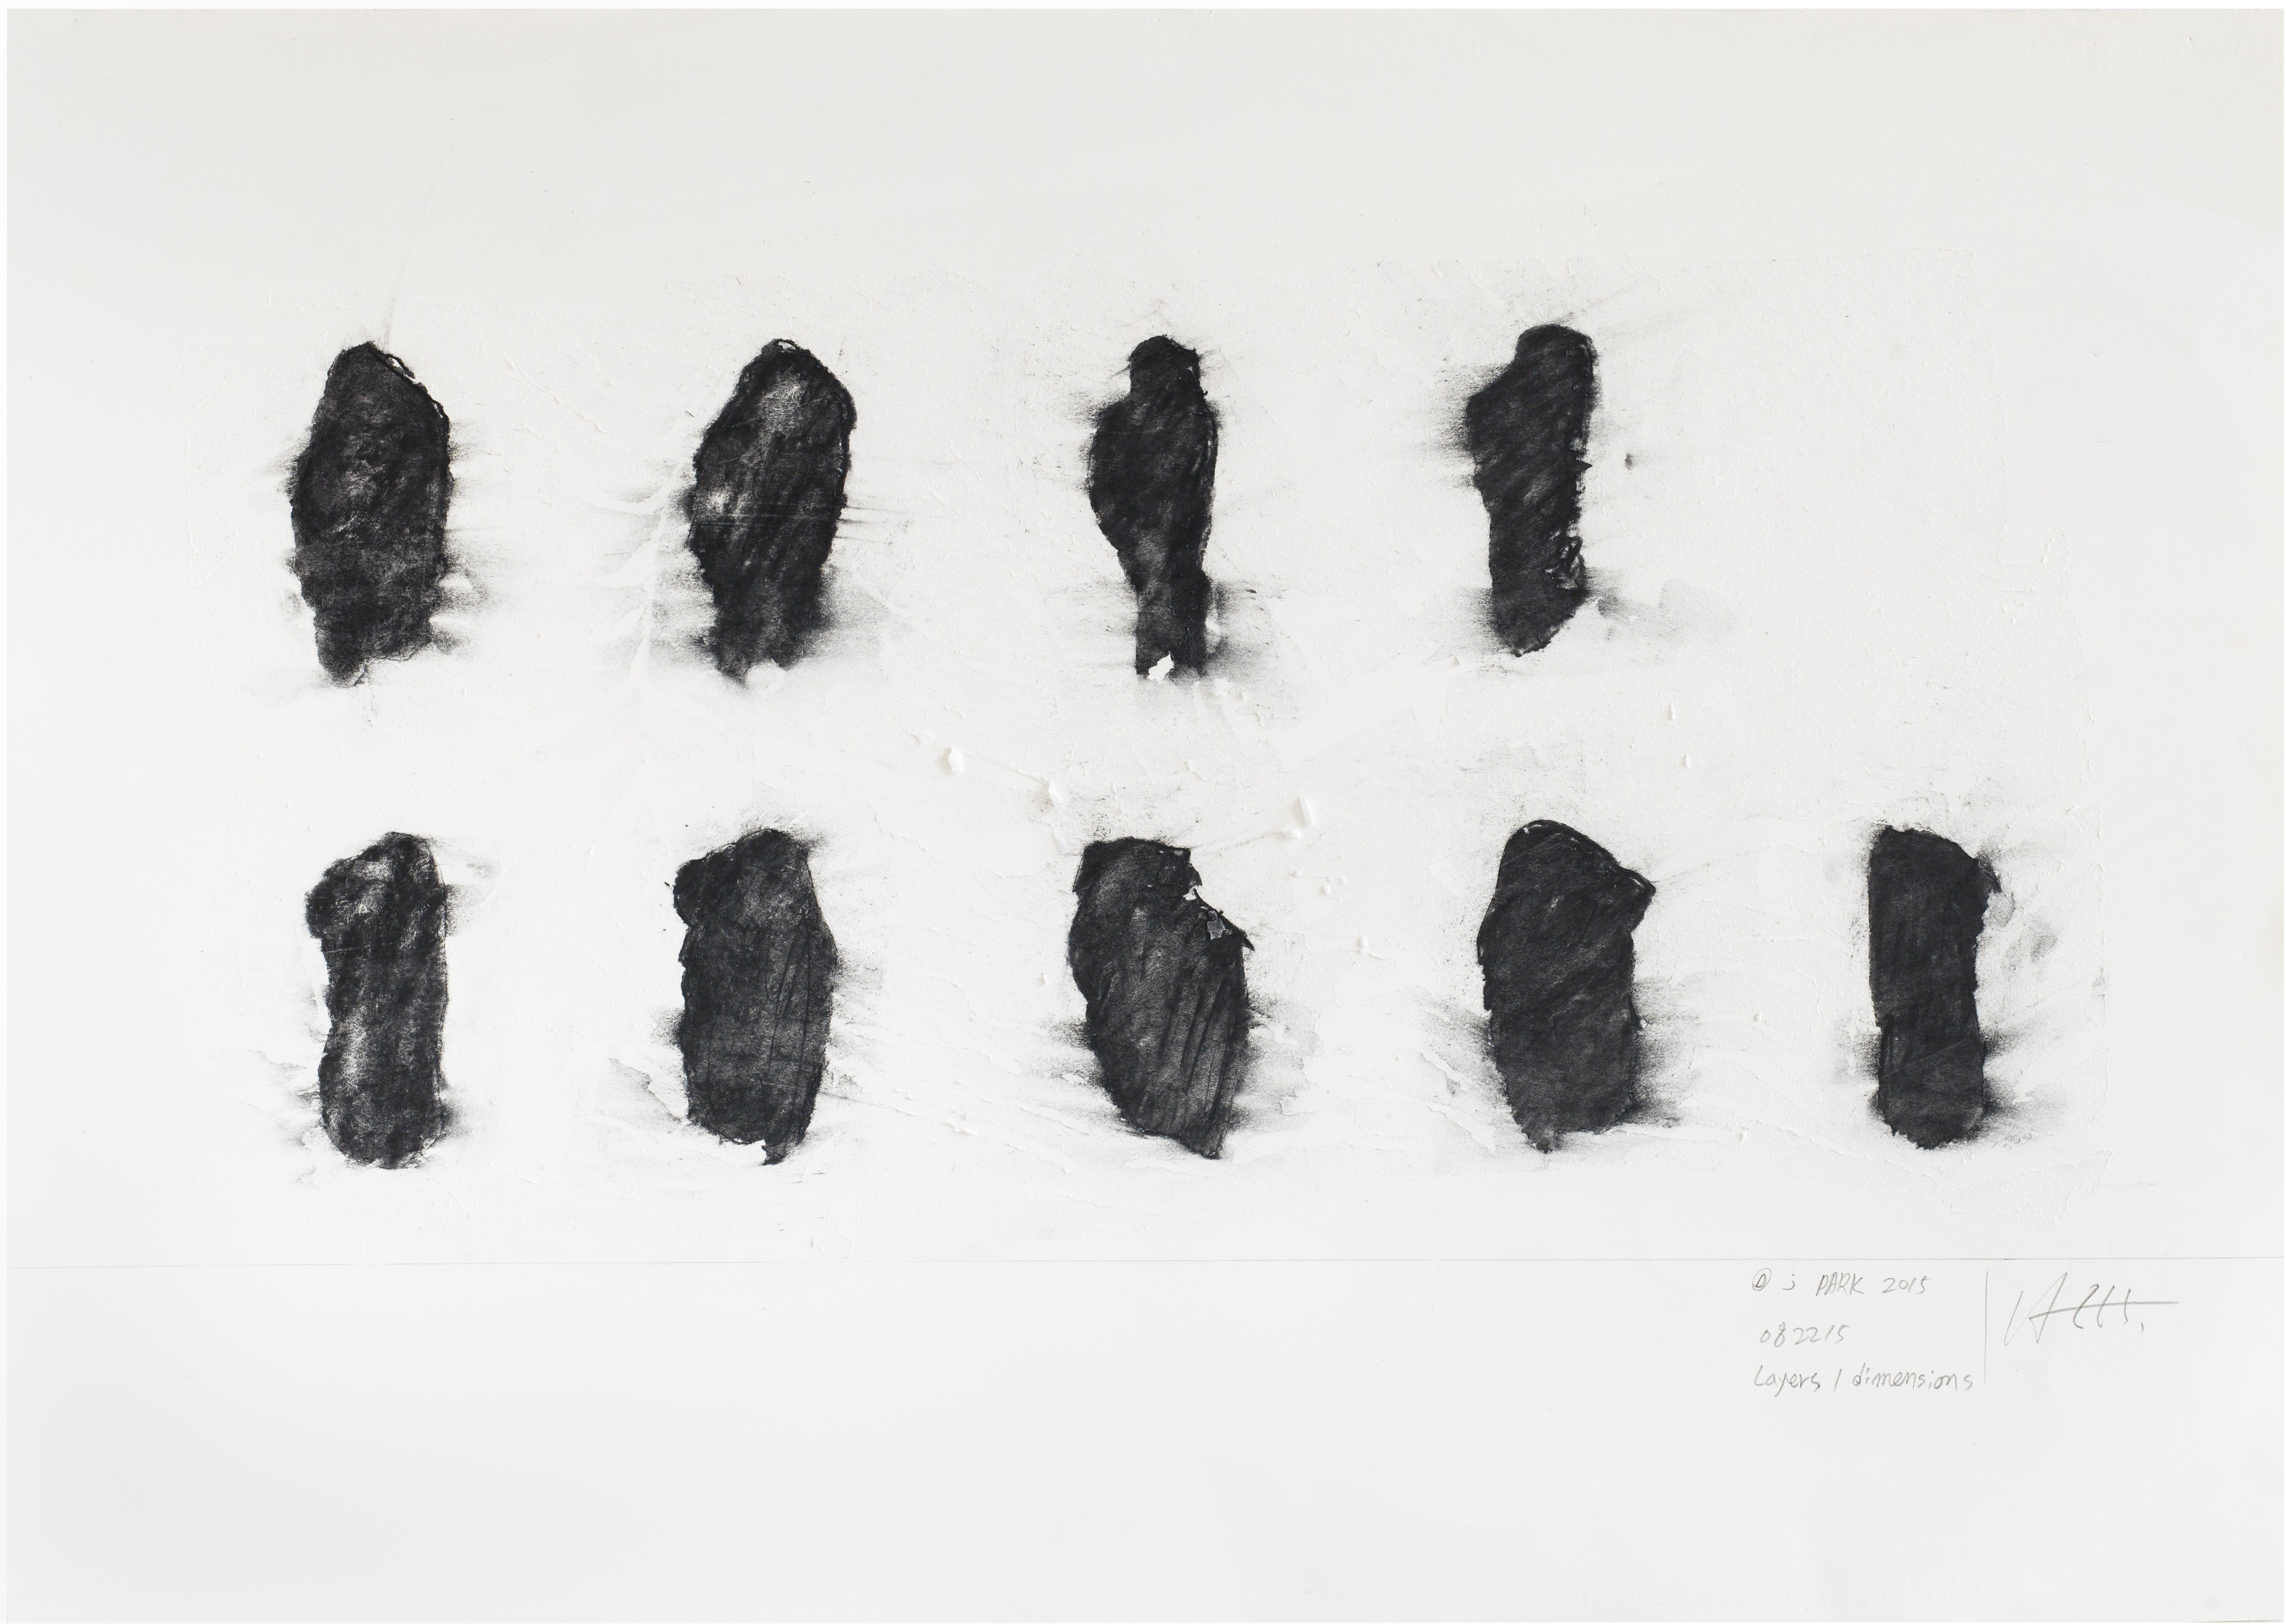 ENCODING 2015, Chacoal on paper, 99x69cm (2)